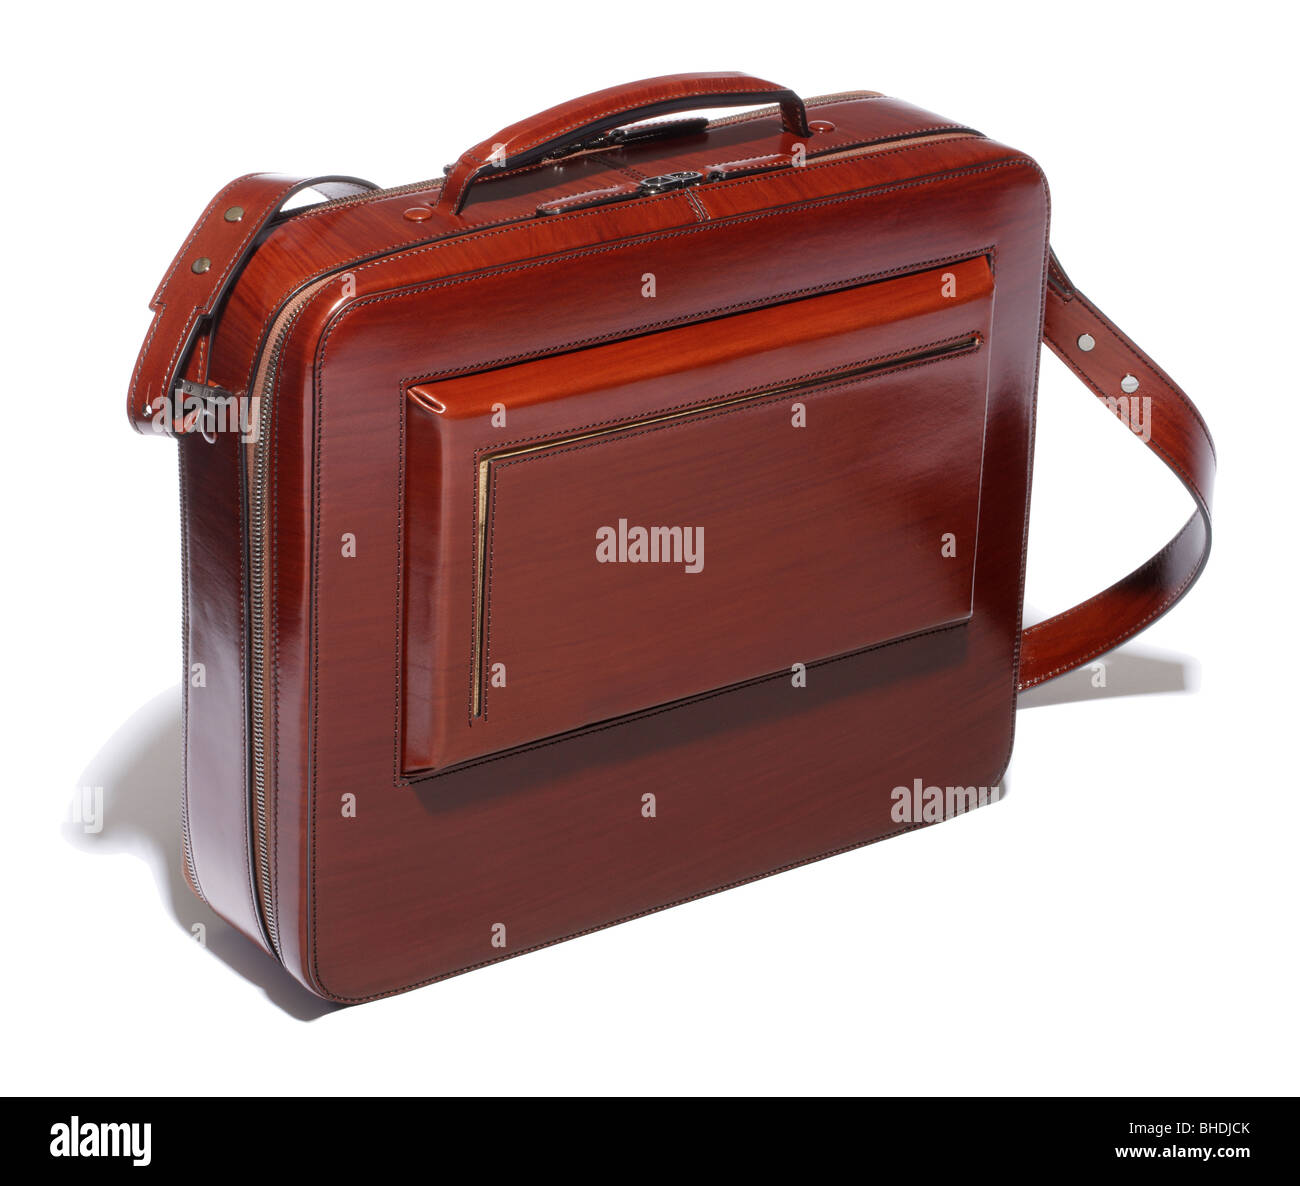 Alfred Dunhill leather briefcase - Stock Image